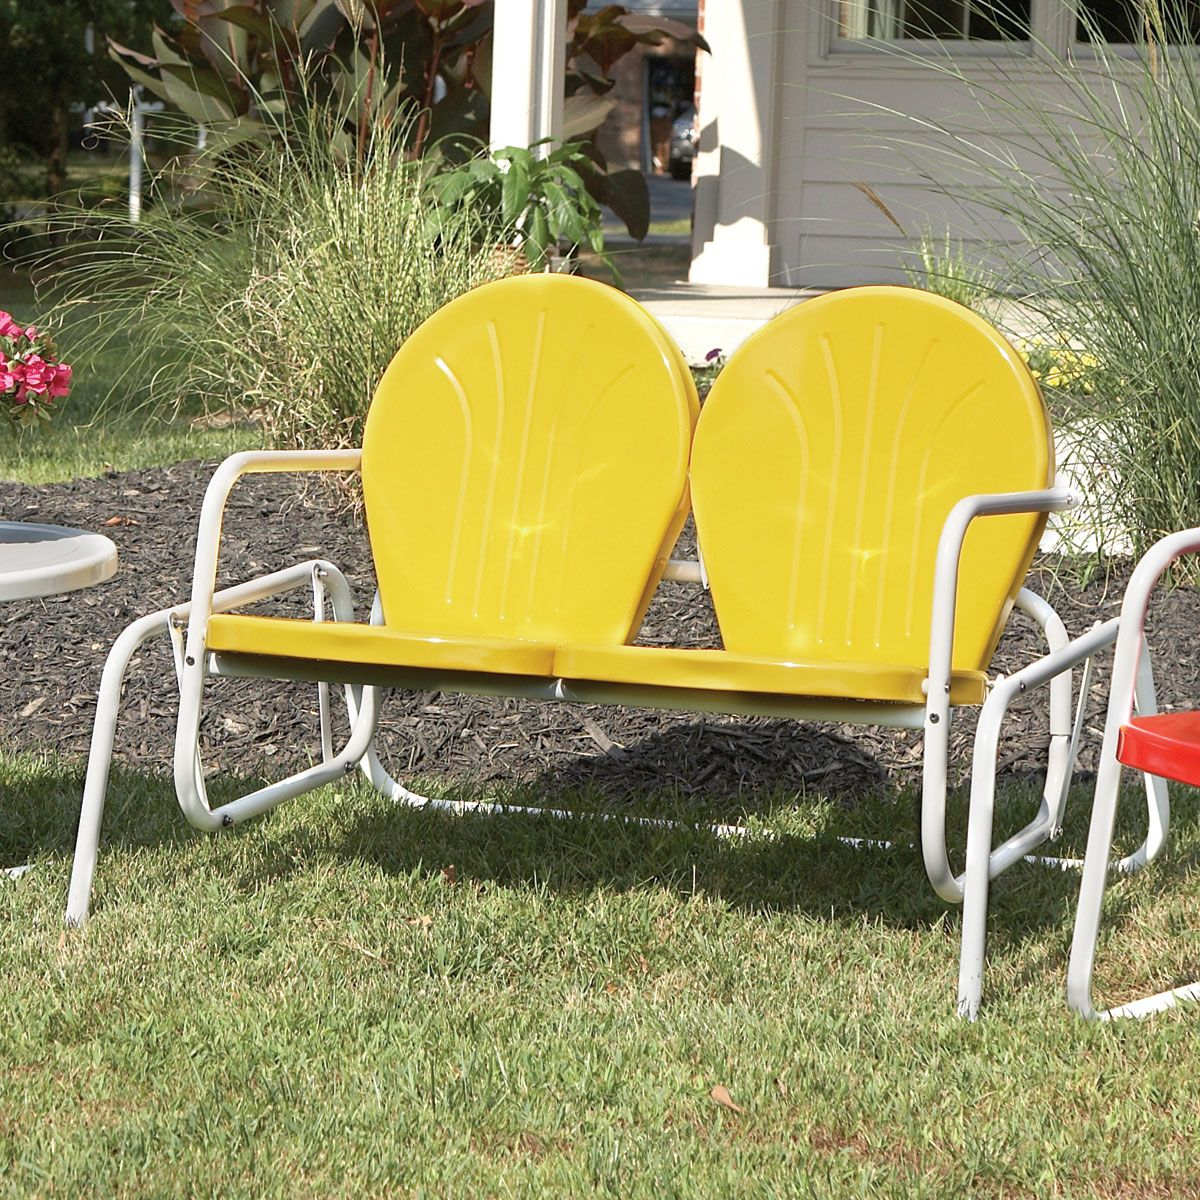 Vintage Metal Chairs Outdoor Retro Metal Glider Lawn Chair